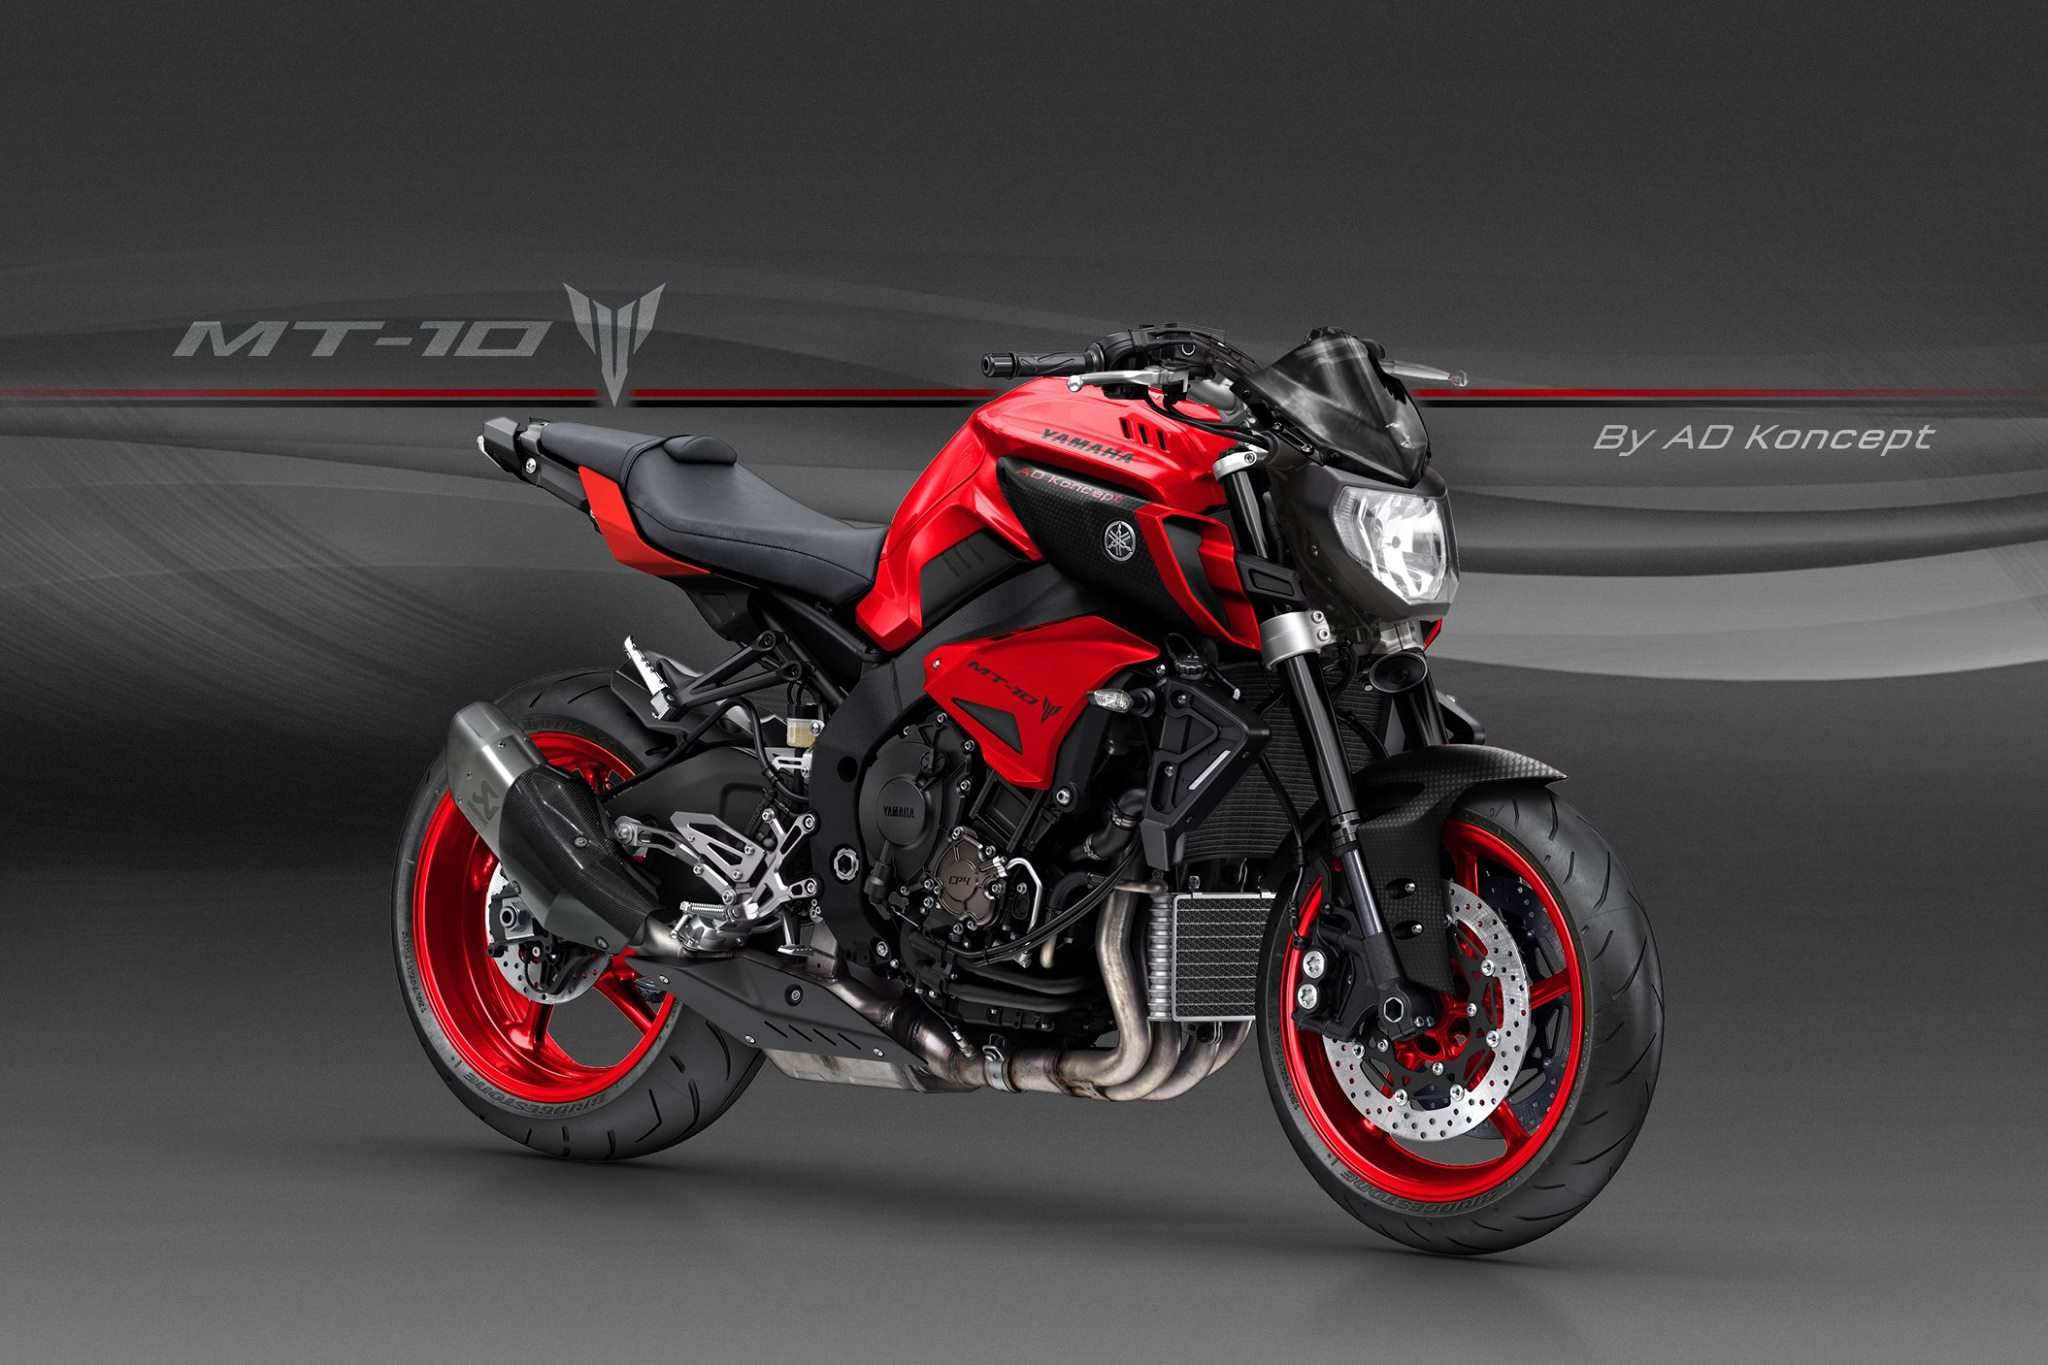 Yamaha MT-10 in Valentino Rossi Livery and More from AD Koncept ...